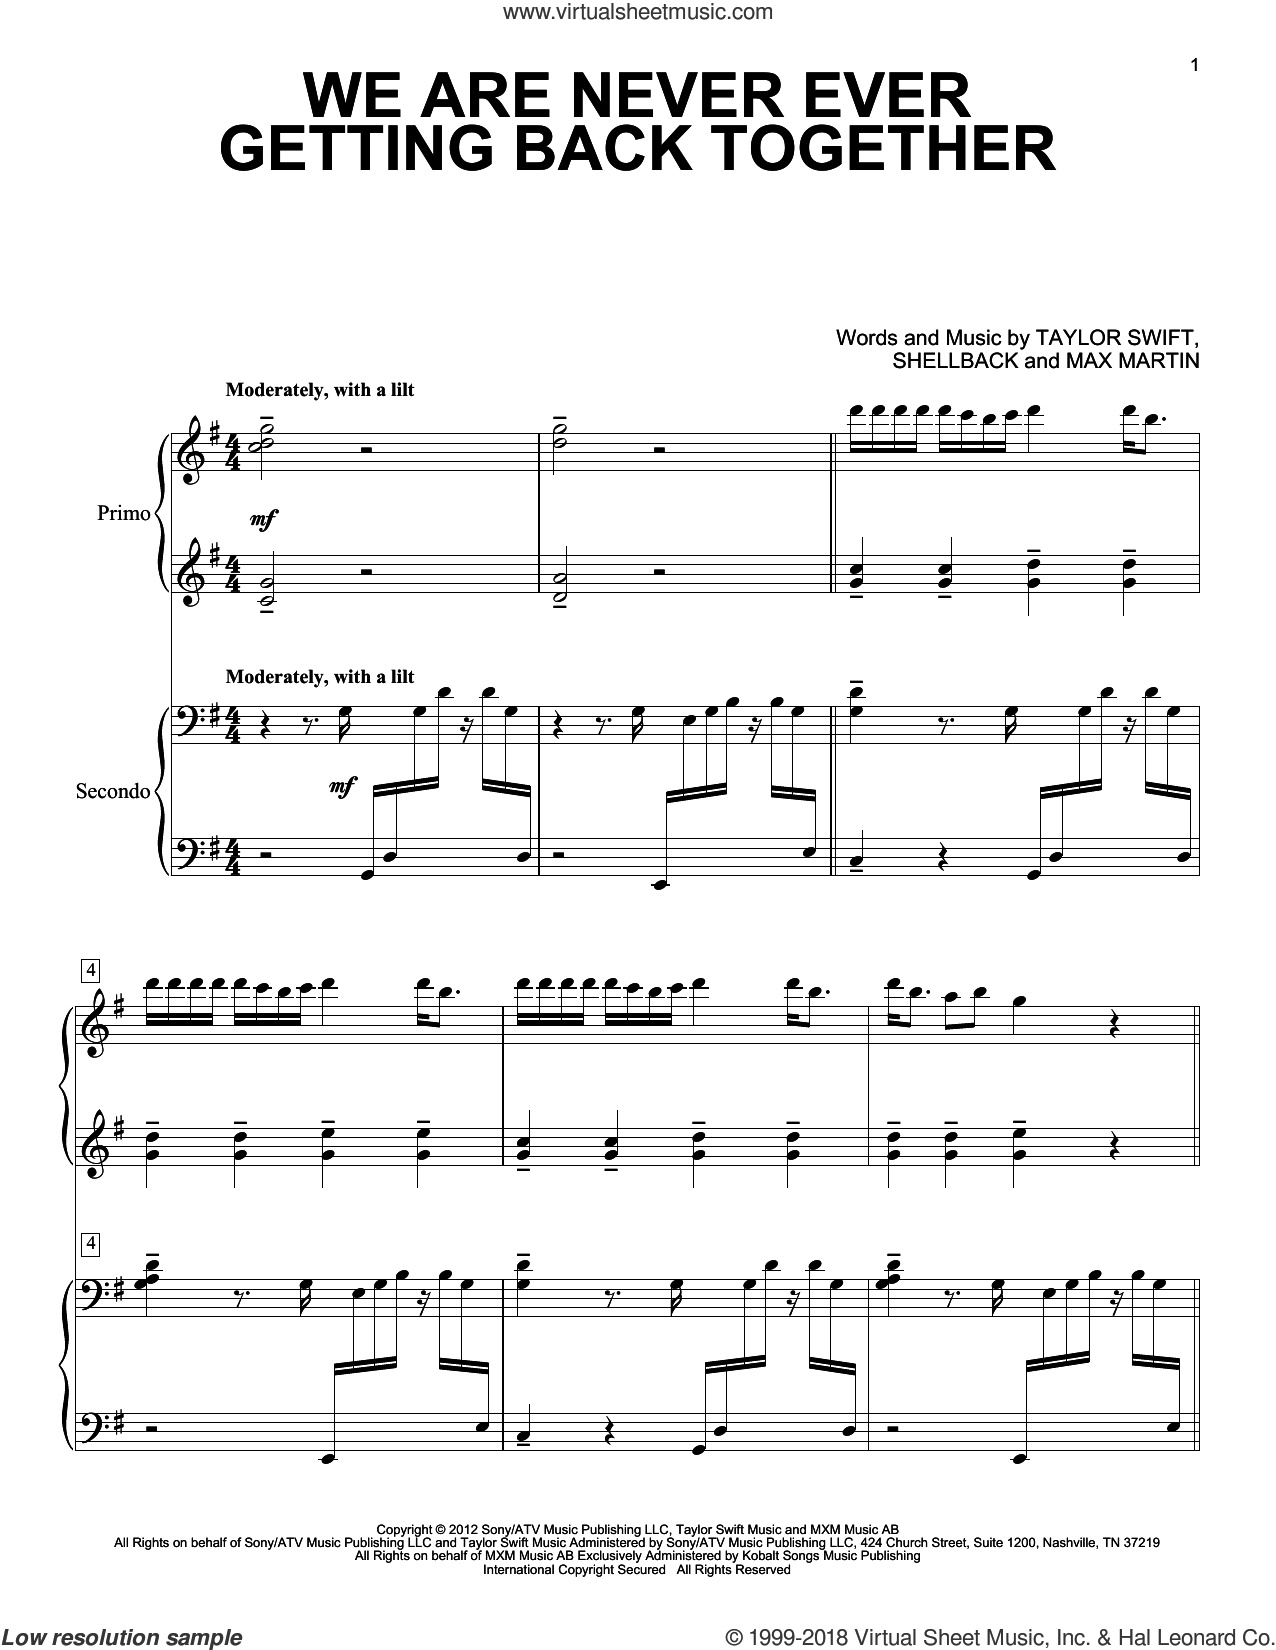 We Are Never Ever Getting Back Together sheet music for piano four hands (duets) by Shellback